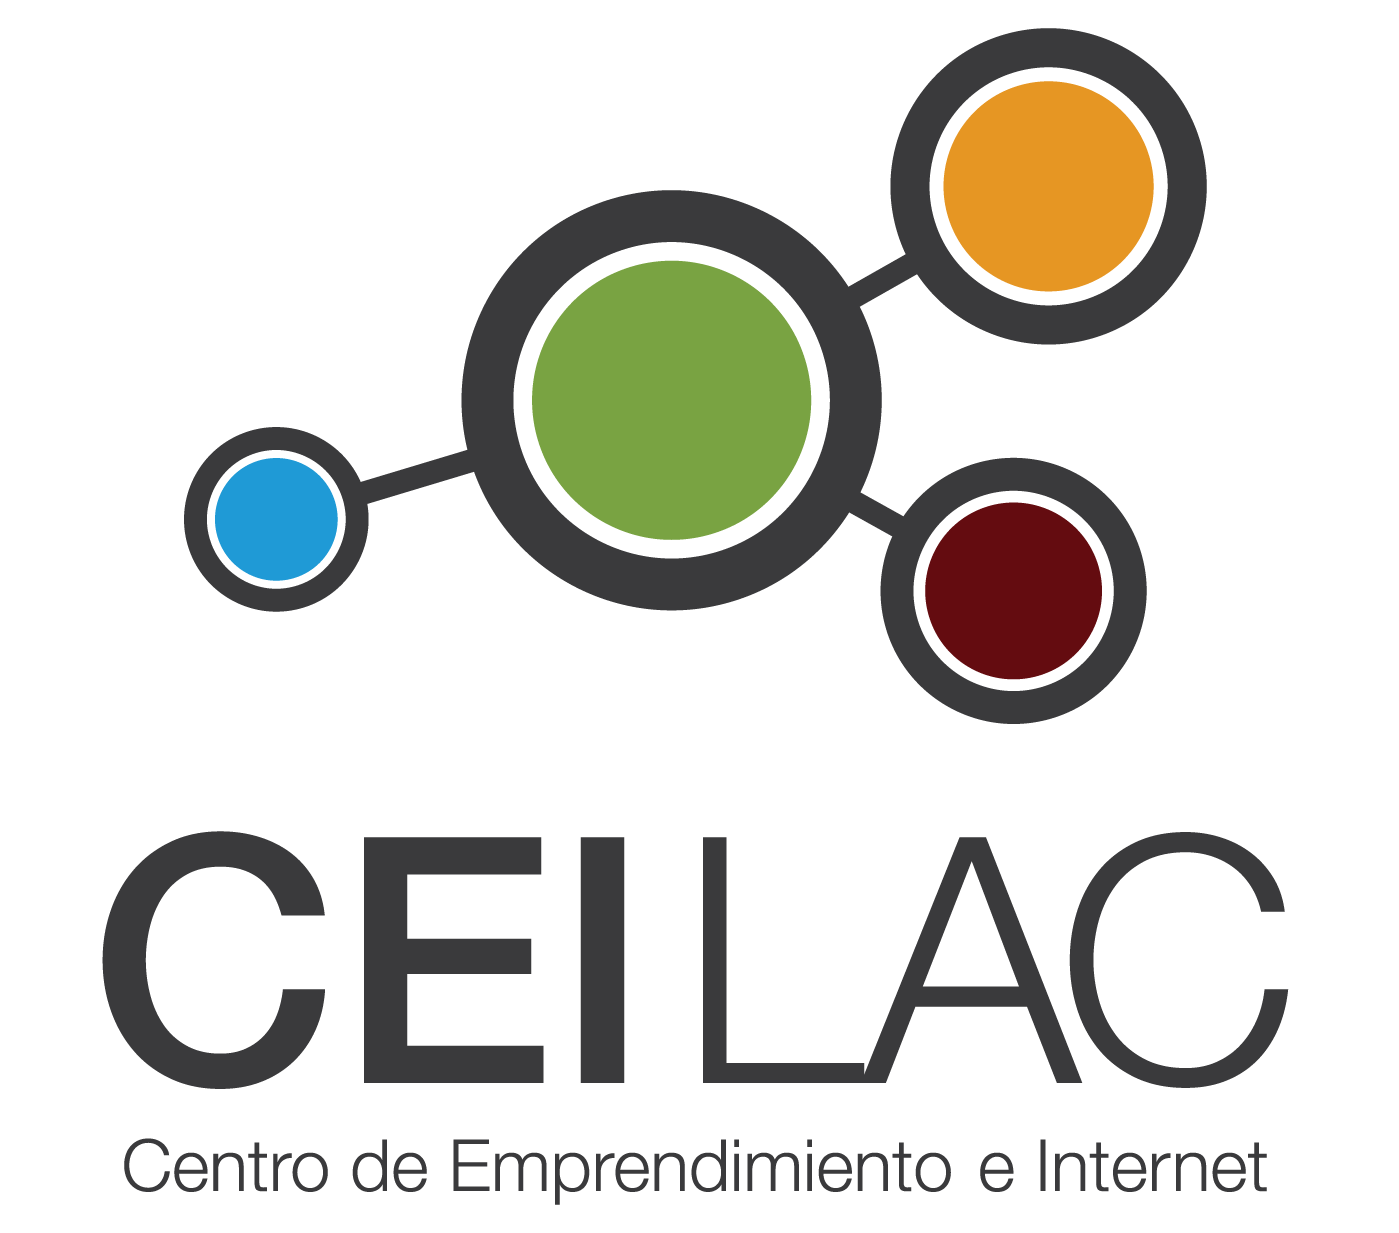 ceilac-logo-01.png